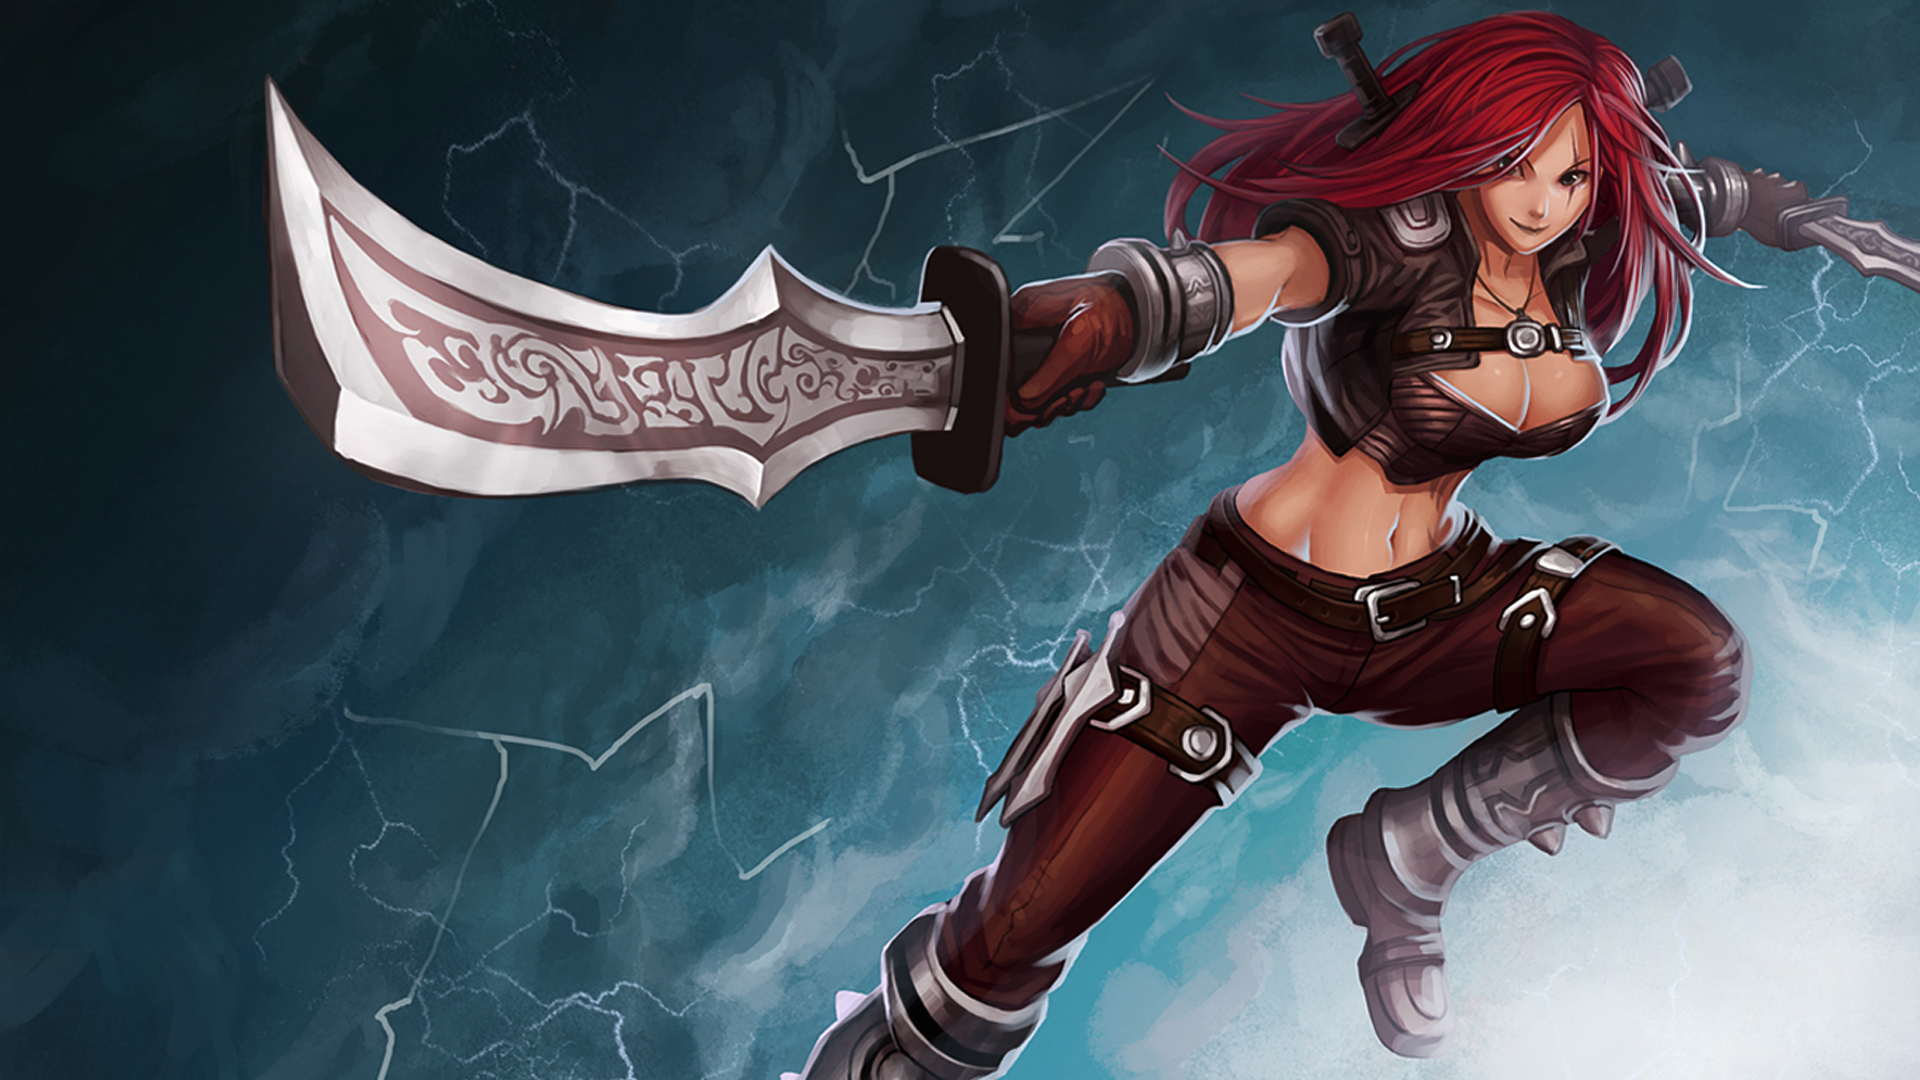 katarina-girl-champion-lol-goomrrat-1920x1080